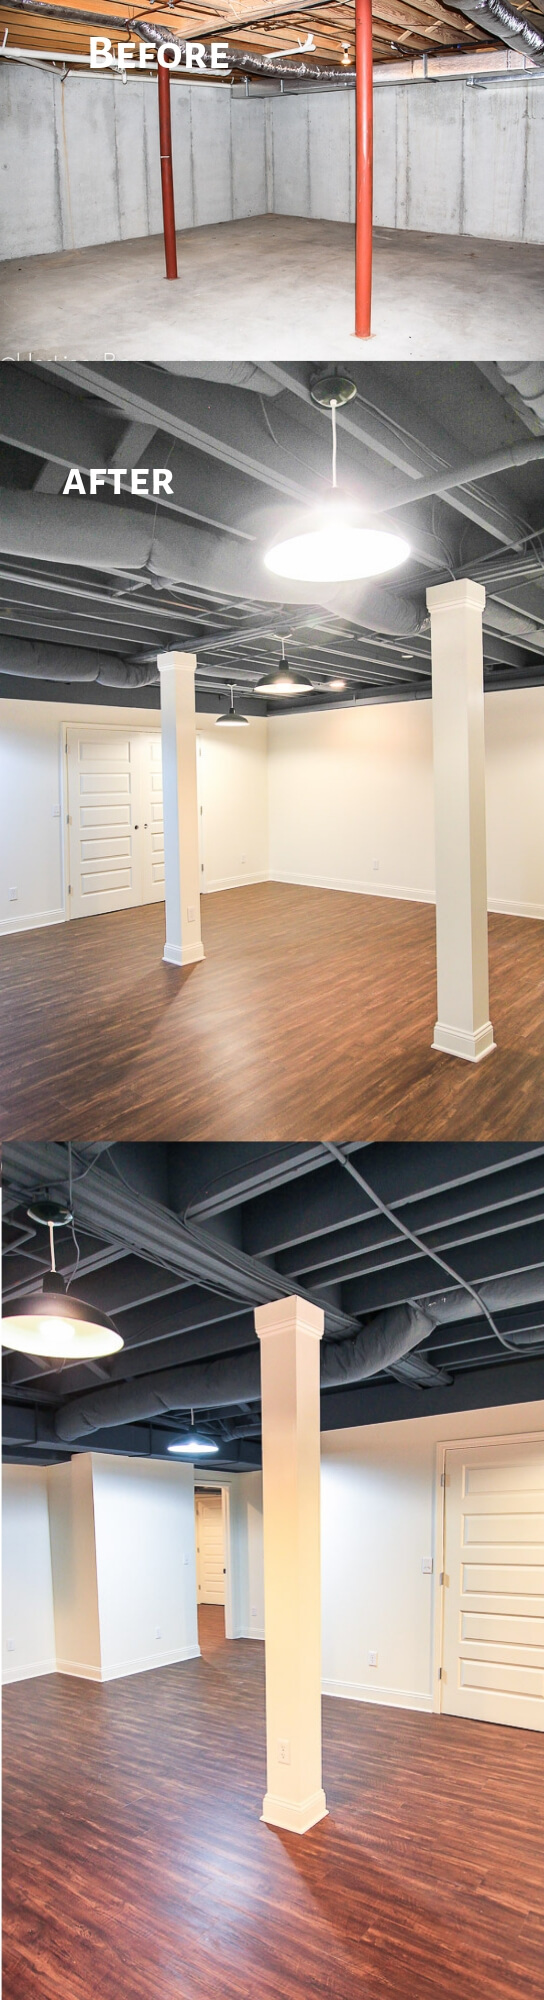 Painted Basement with Low Ceilings